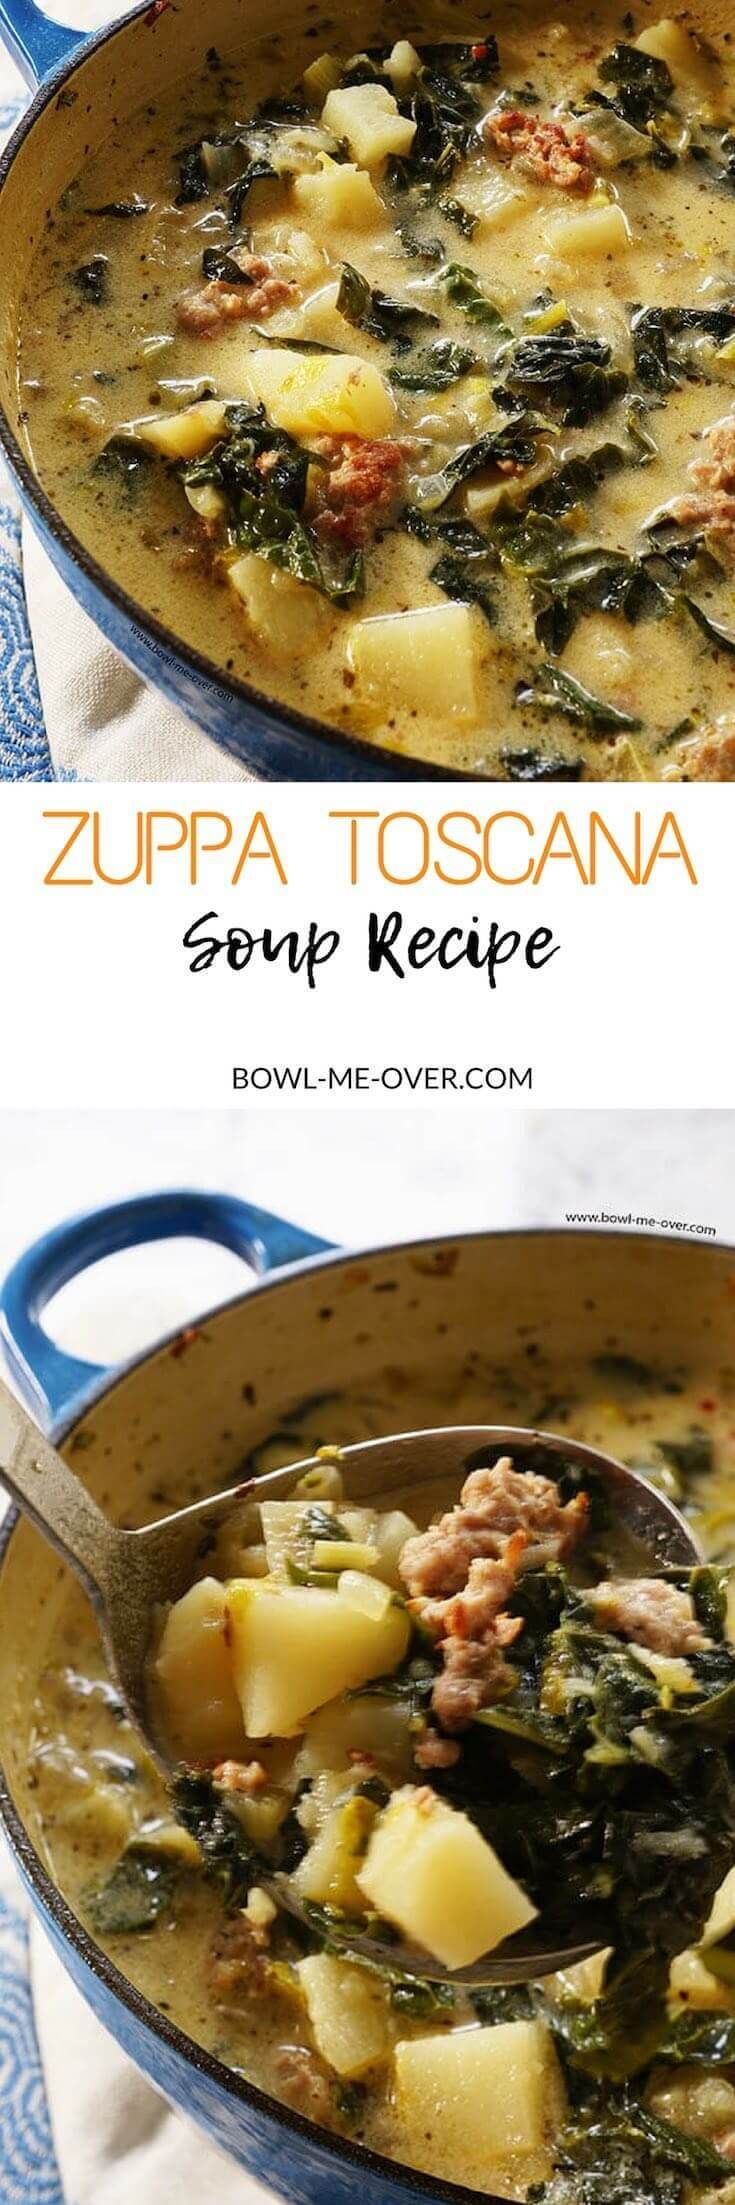 You don't have to go out to your favorite Italian Restaurant to enjoy restaurant style soup at home! Zuppa Toscana Soup is a quick and easy soup - delicious! #zuppatoscanasoup #olivegardencopycat #bowlmeover #easyrecipe via @bowlmeover